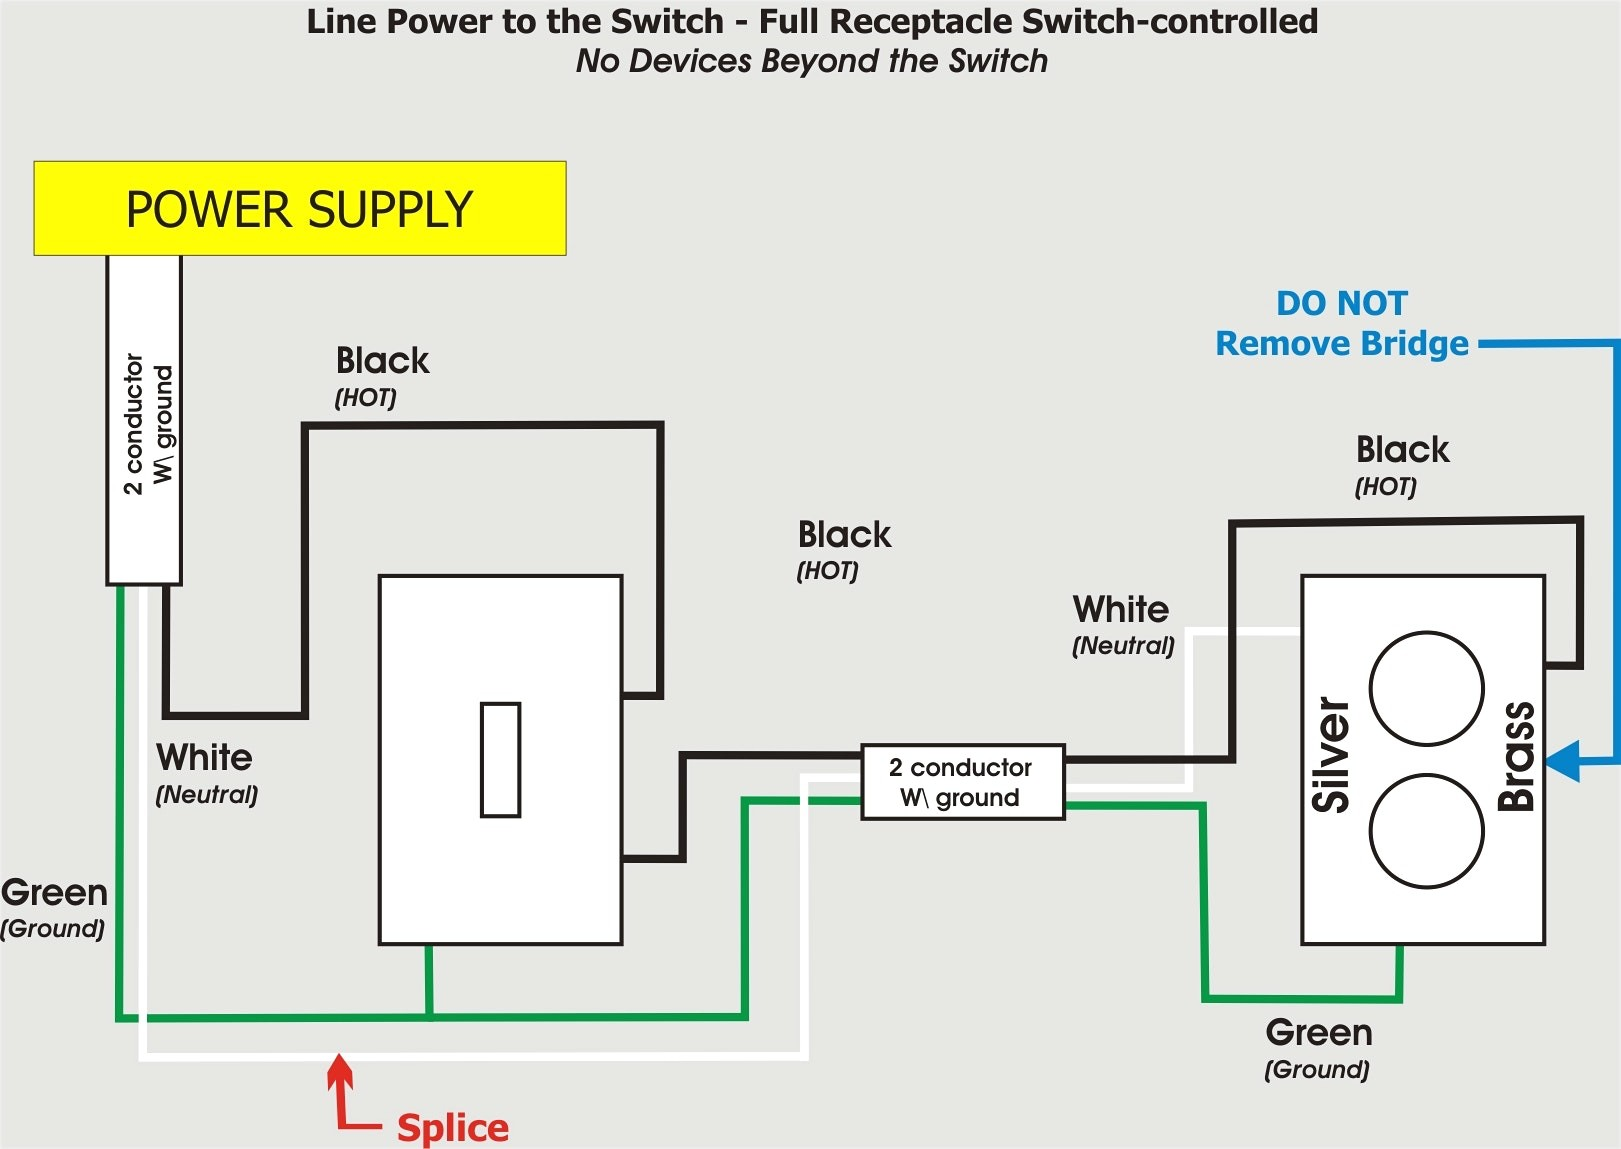 Attractive Leviton 51240 Wm Diegram Composition - Electrical and ...